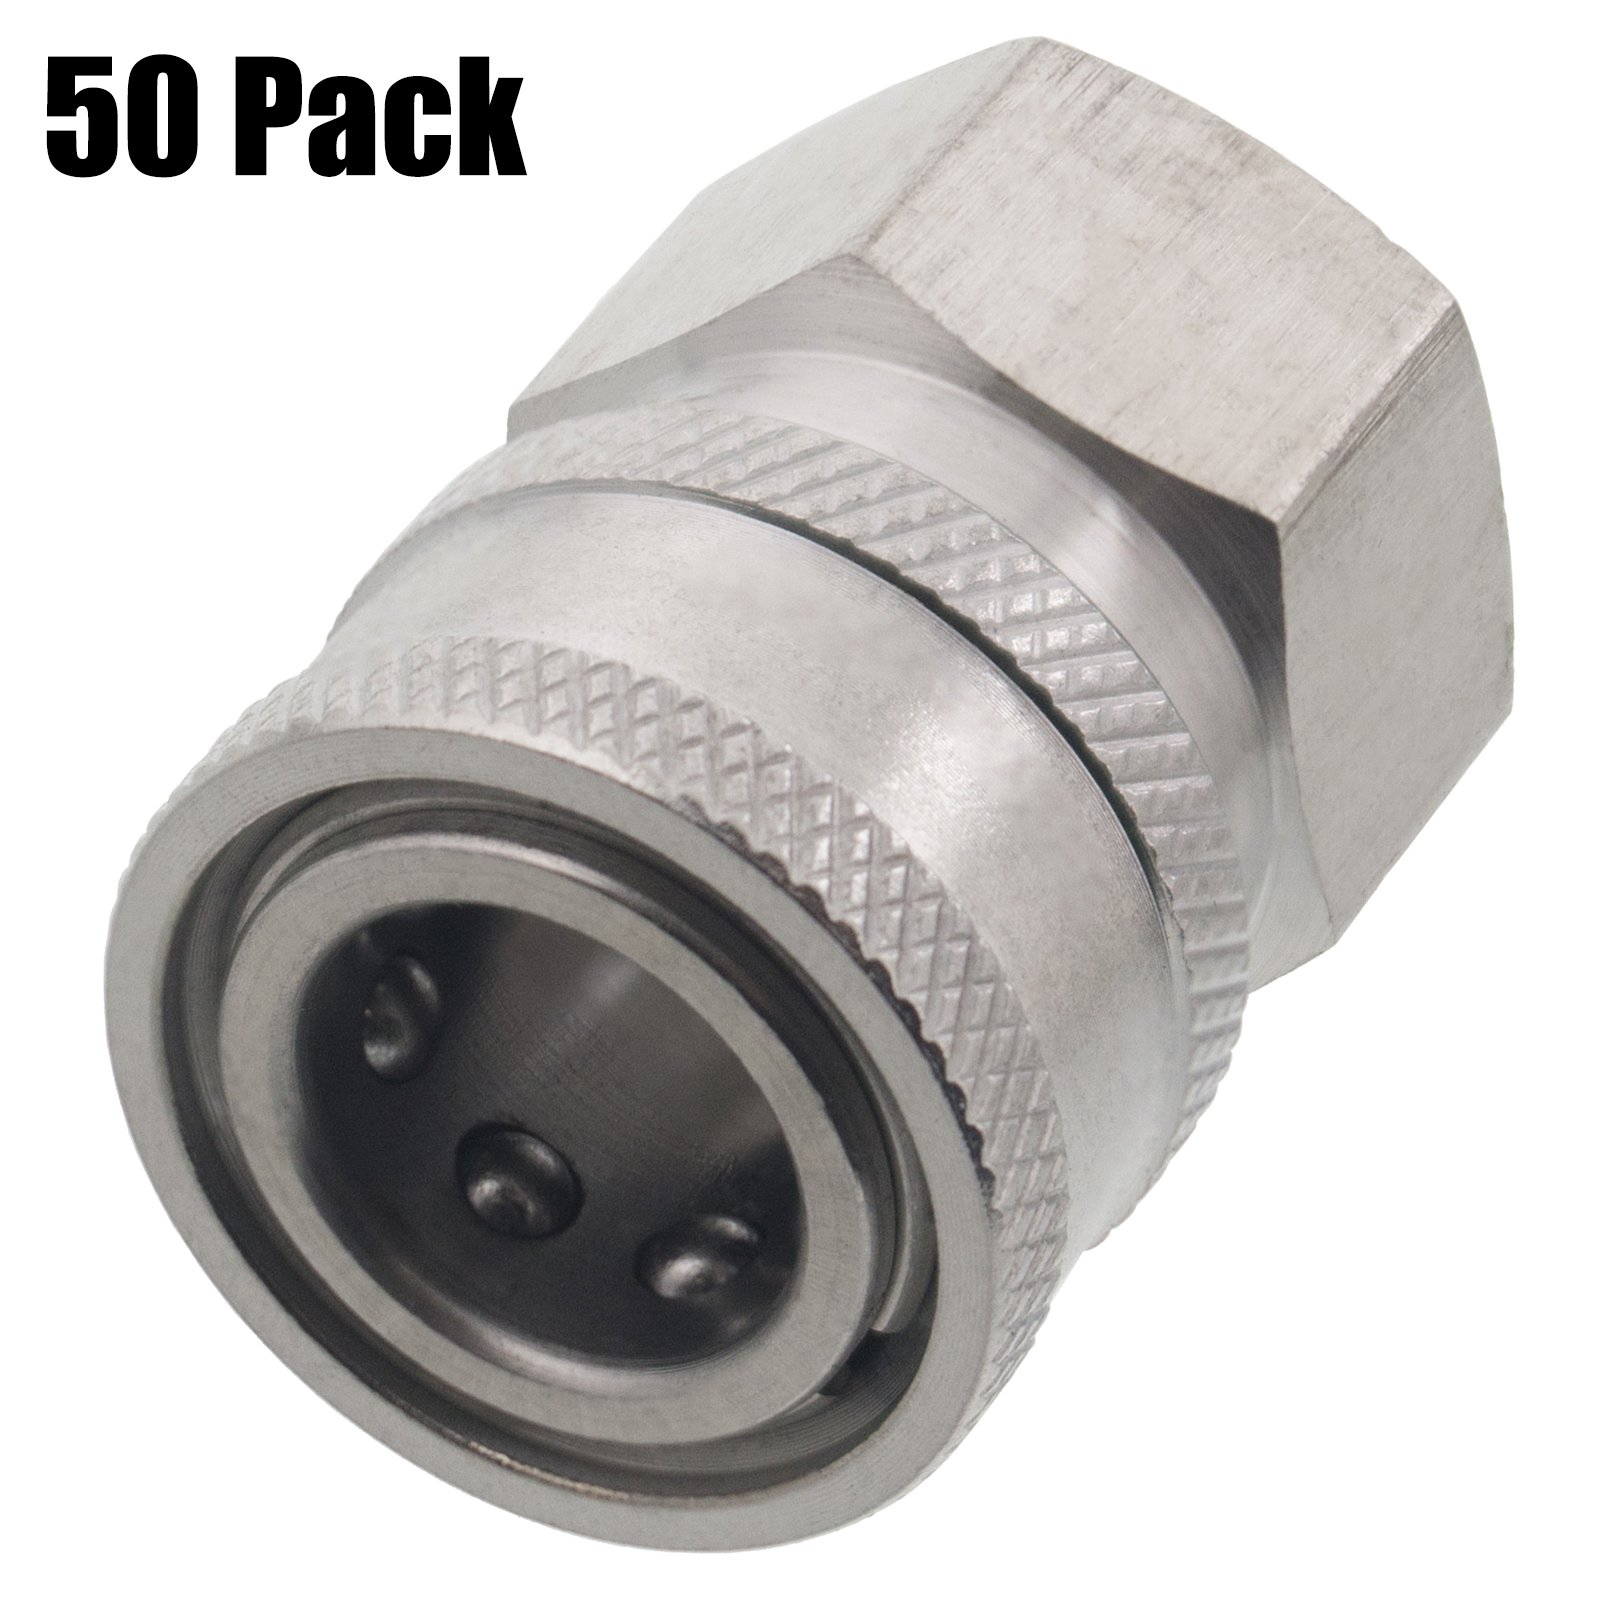 Erie Tools 50 3/8'' FPT Female Stainless Steel Socket Quick Connect Coupler 5000 PSI 10 GPM for Pressure Washer Nozzle Gun Hose Wand